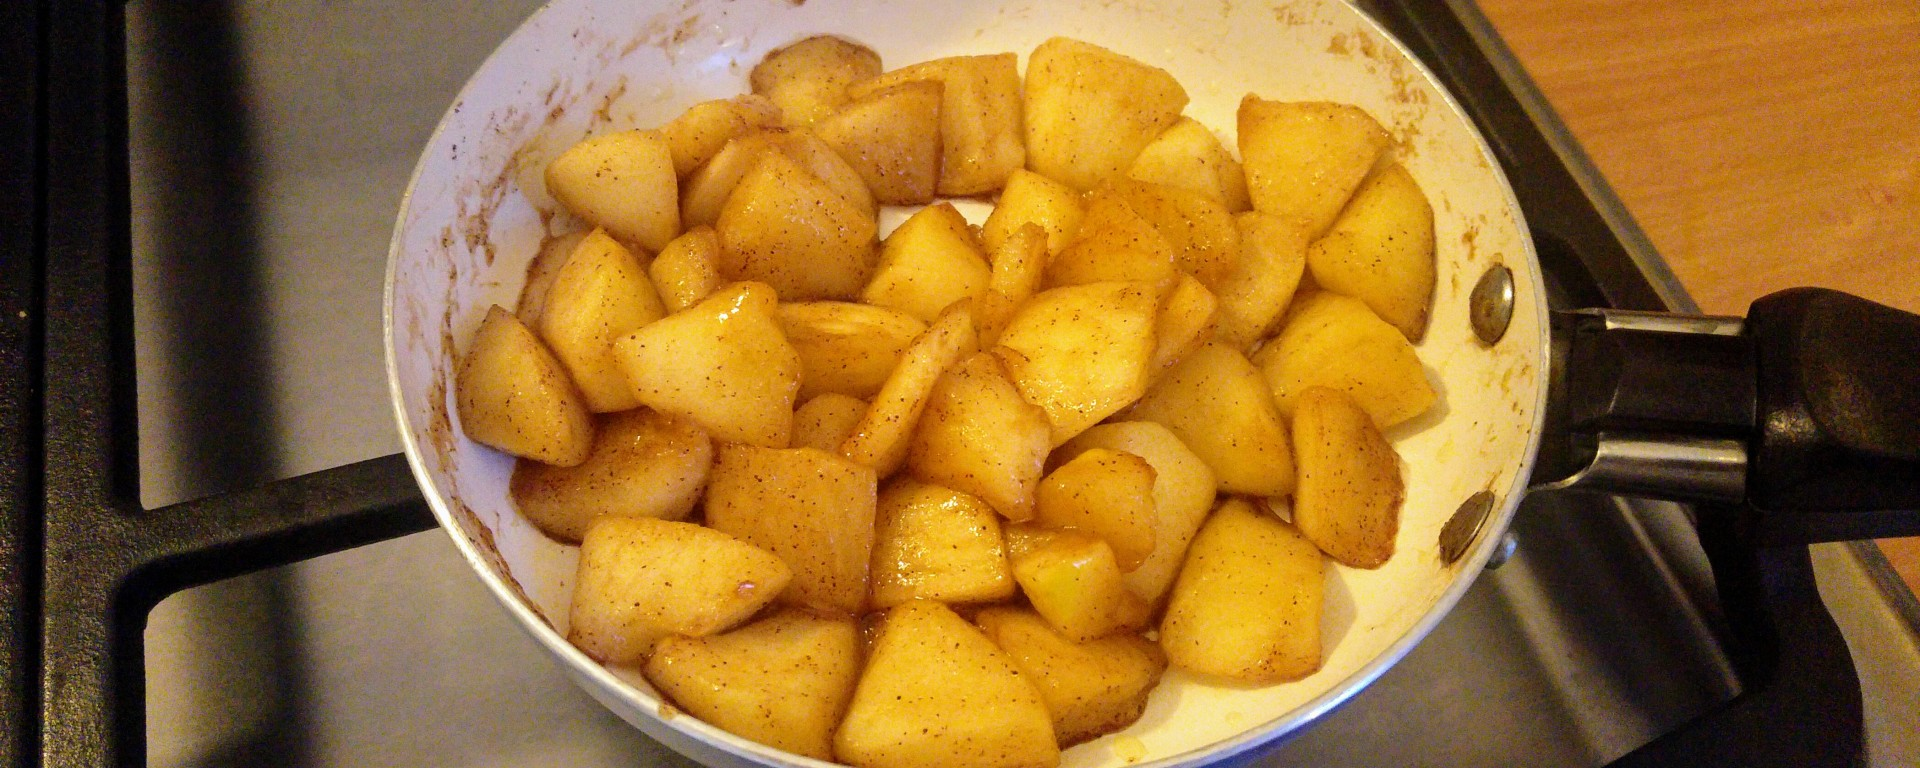 Caramelized apples on a frying pan